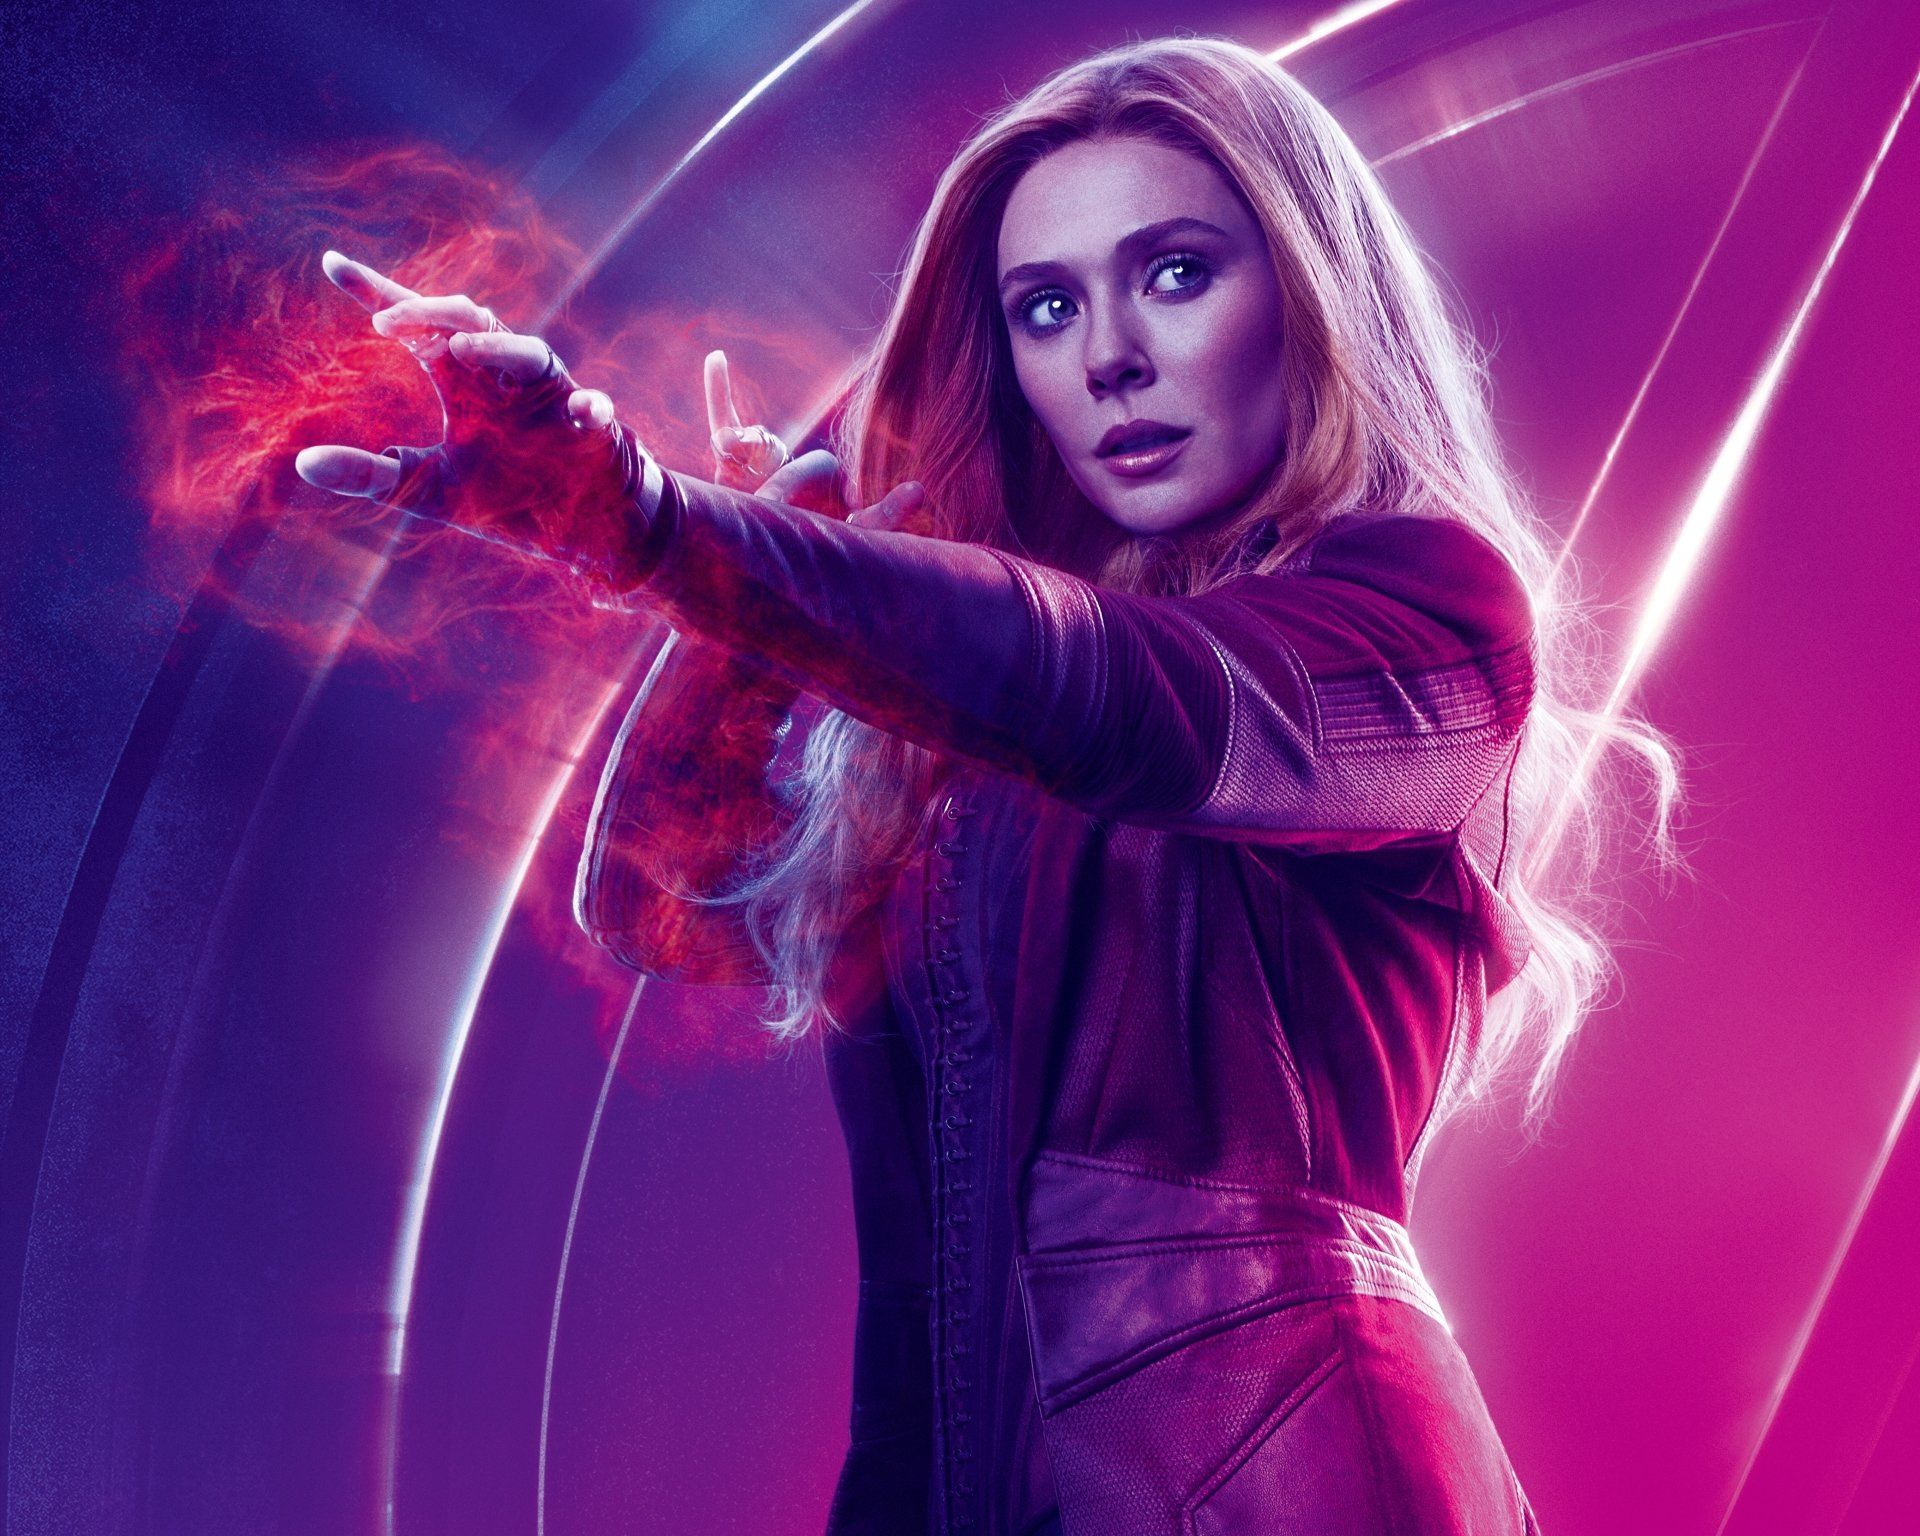 Scarlet Witch Avengers Infinity War 8k Ultra Hd Wallpaper And